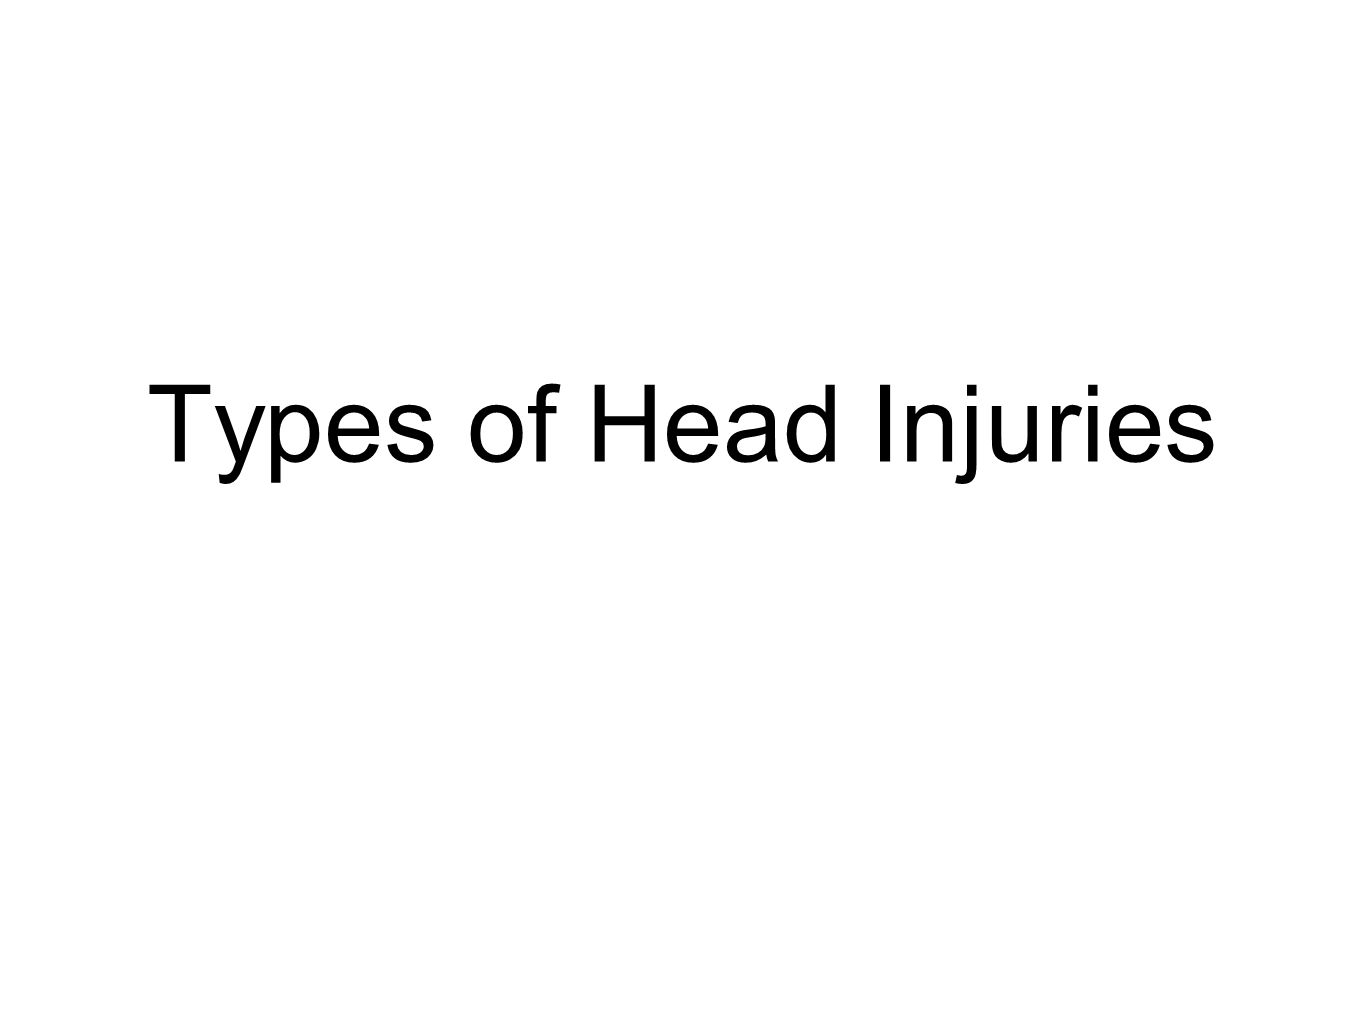 Types of Head Injuries